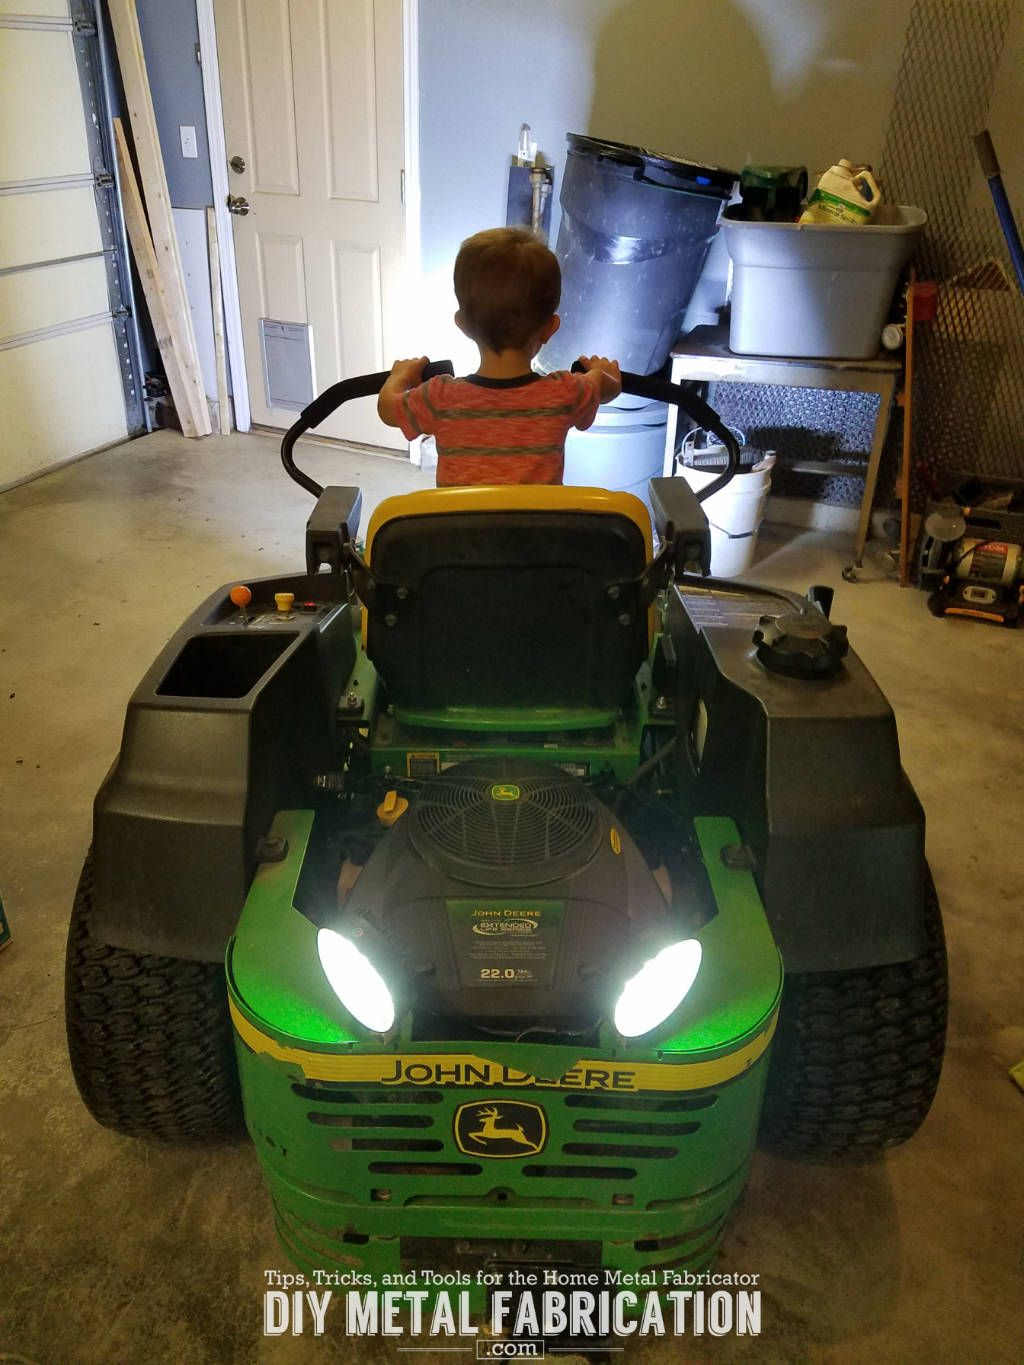 Buggy Board Schnur Step By Step Guide To Install Led Lights On Zero Turn Mower